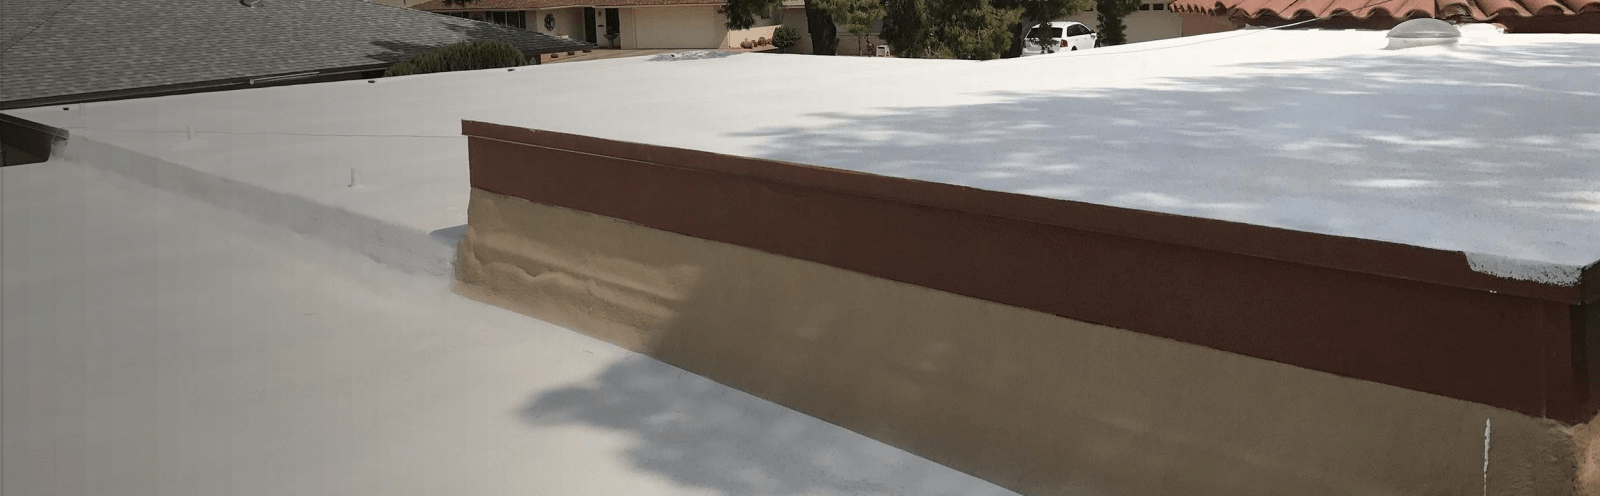 Spray Foam & Asphalt Roofing Contractor Serving Phoenix and All Arizona